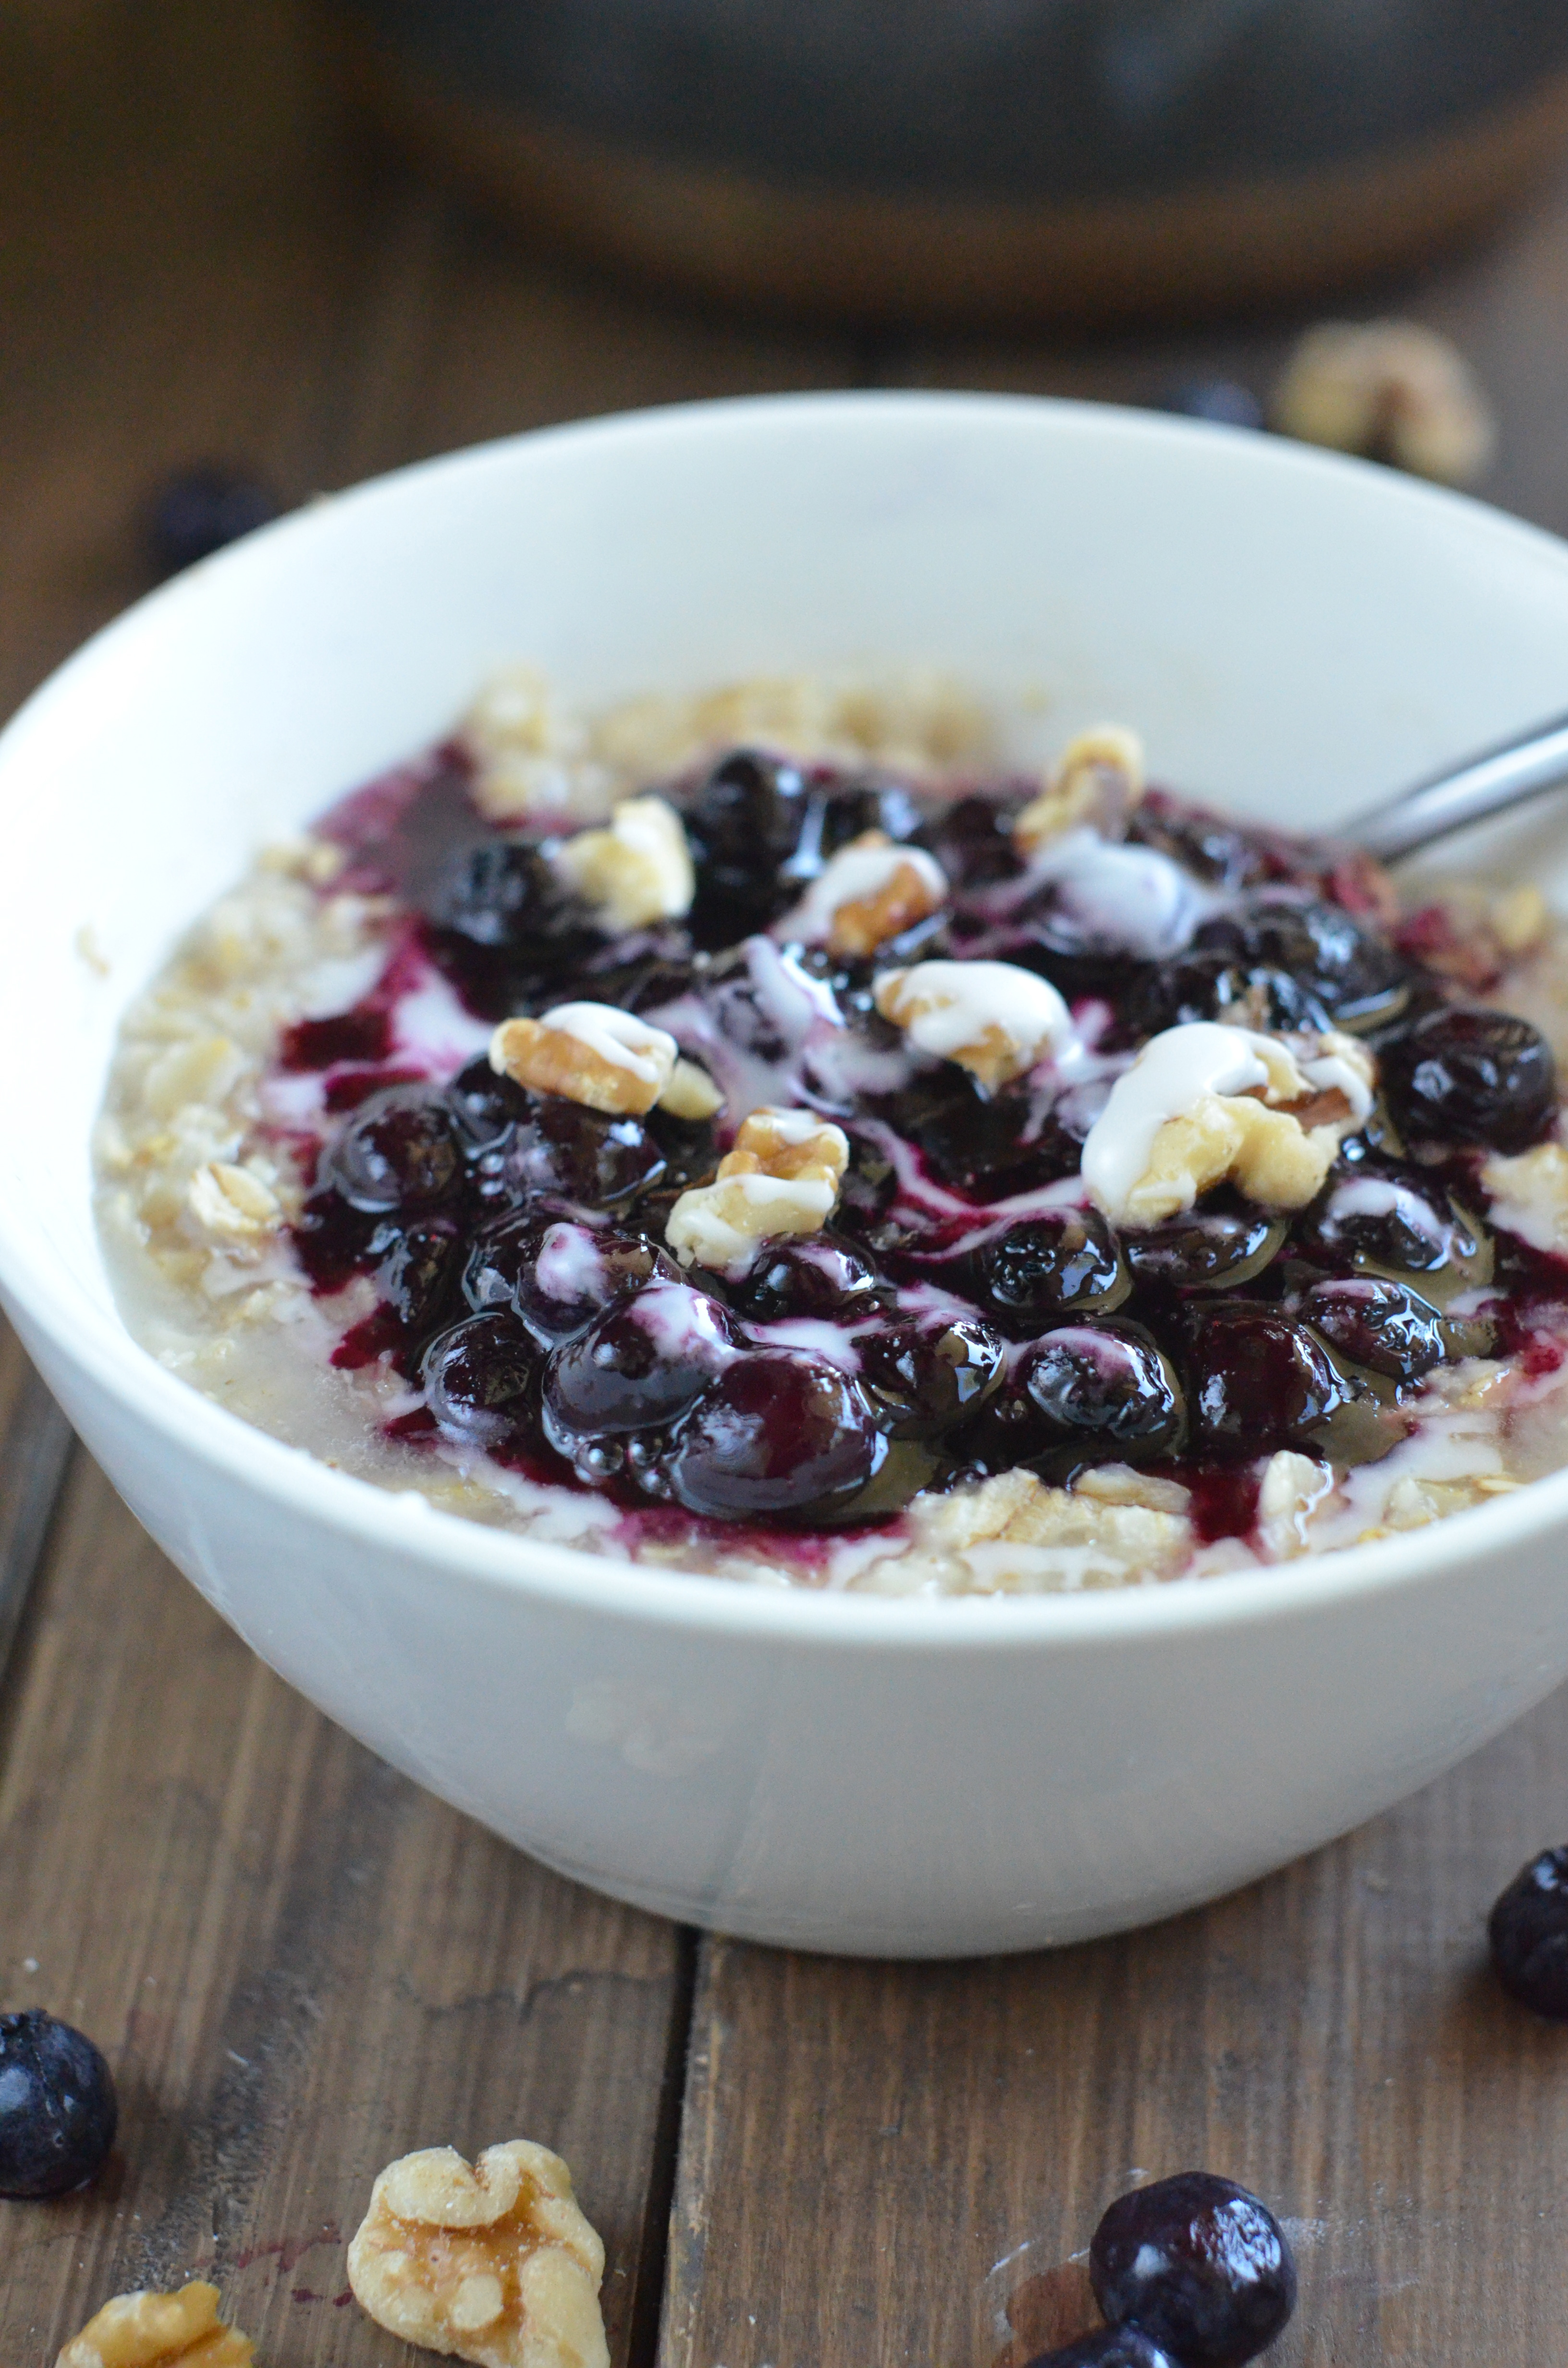 ... Blueberry Pie Oats a go and get ready to load the train to flavor town